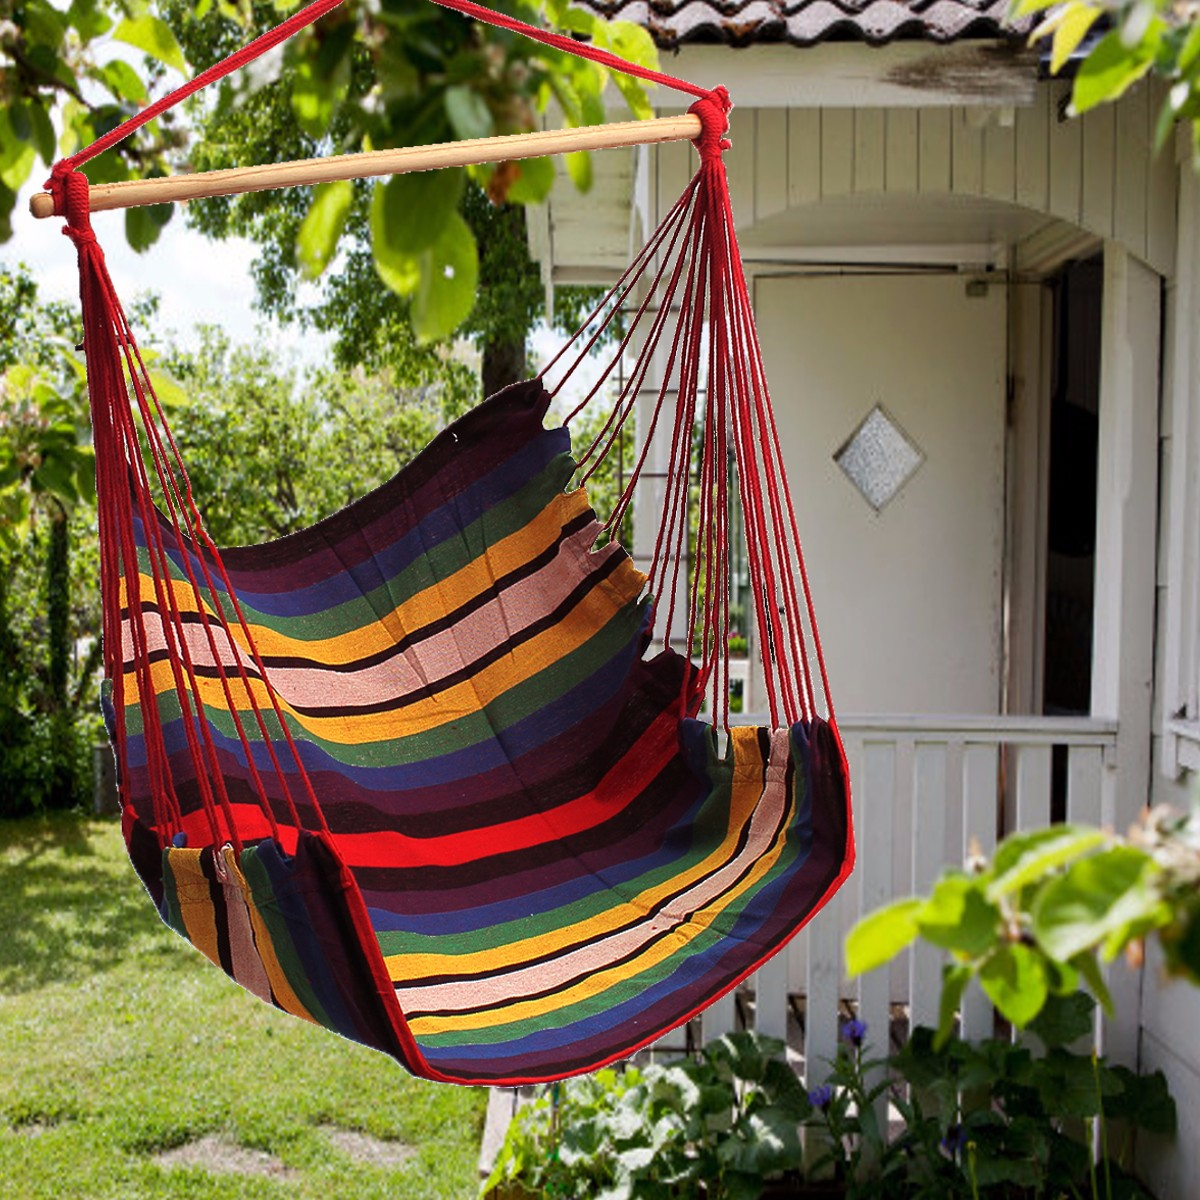 53.2 x 35.5 inches Outdoor Hanging Swing Cotton Hammock Chair Hammocks Seat Cushion Solid Rope Yard Patio Porch Garden